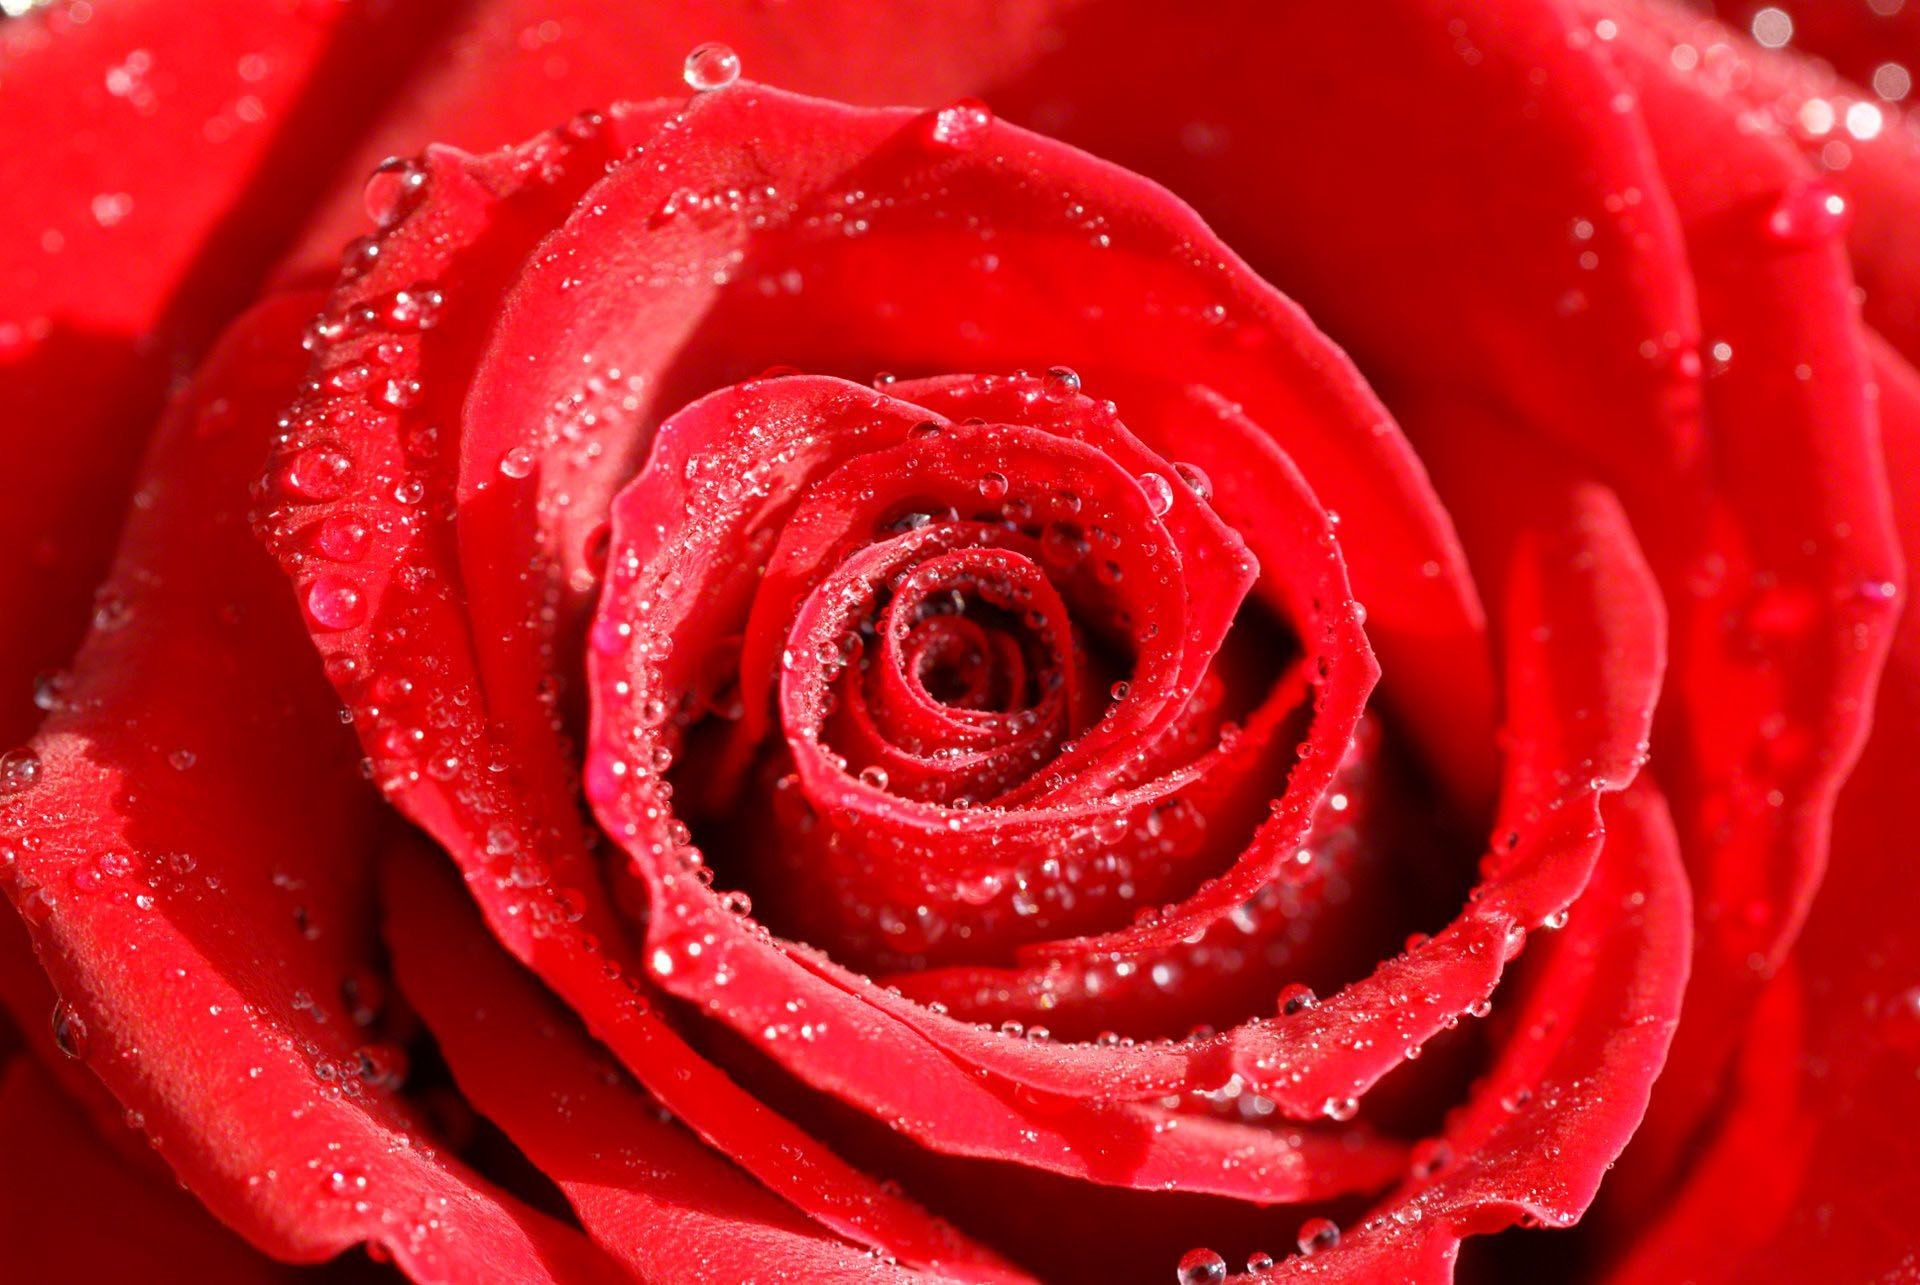 Res: 1920x1285, Best ideas about Rose Wallpaper on Pinterest Screensaver 1024×640 Roses Wallpaper (36 Wallpapers